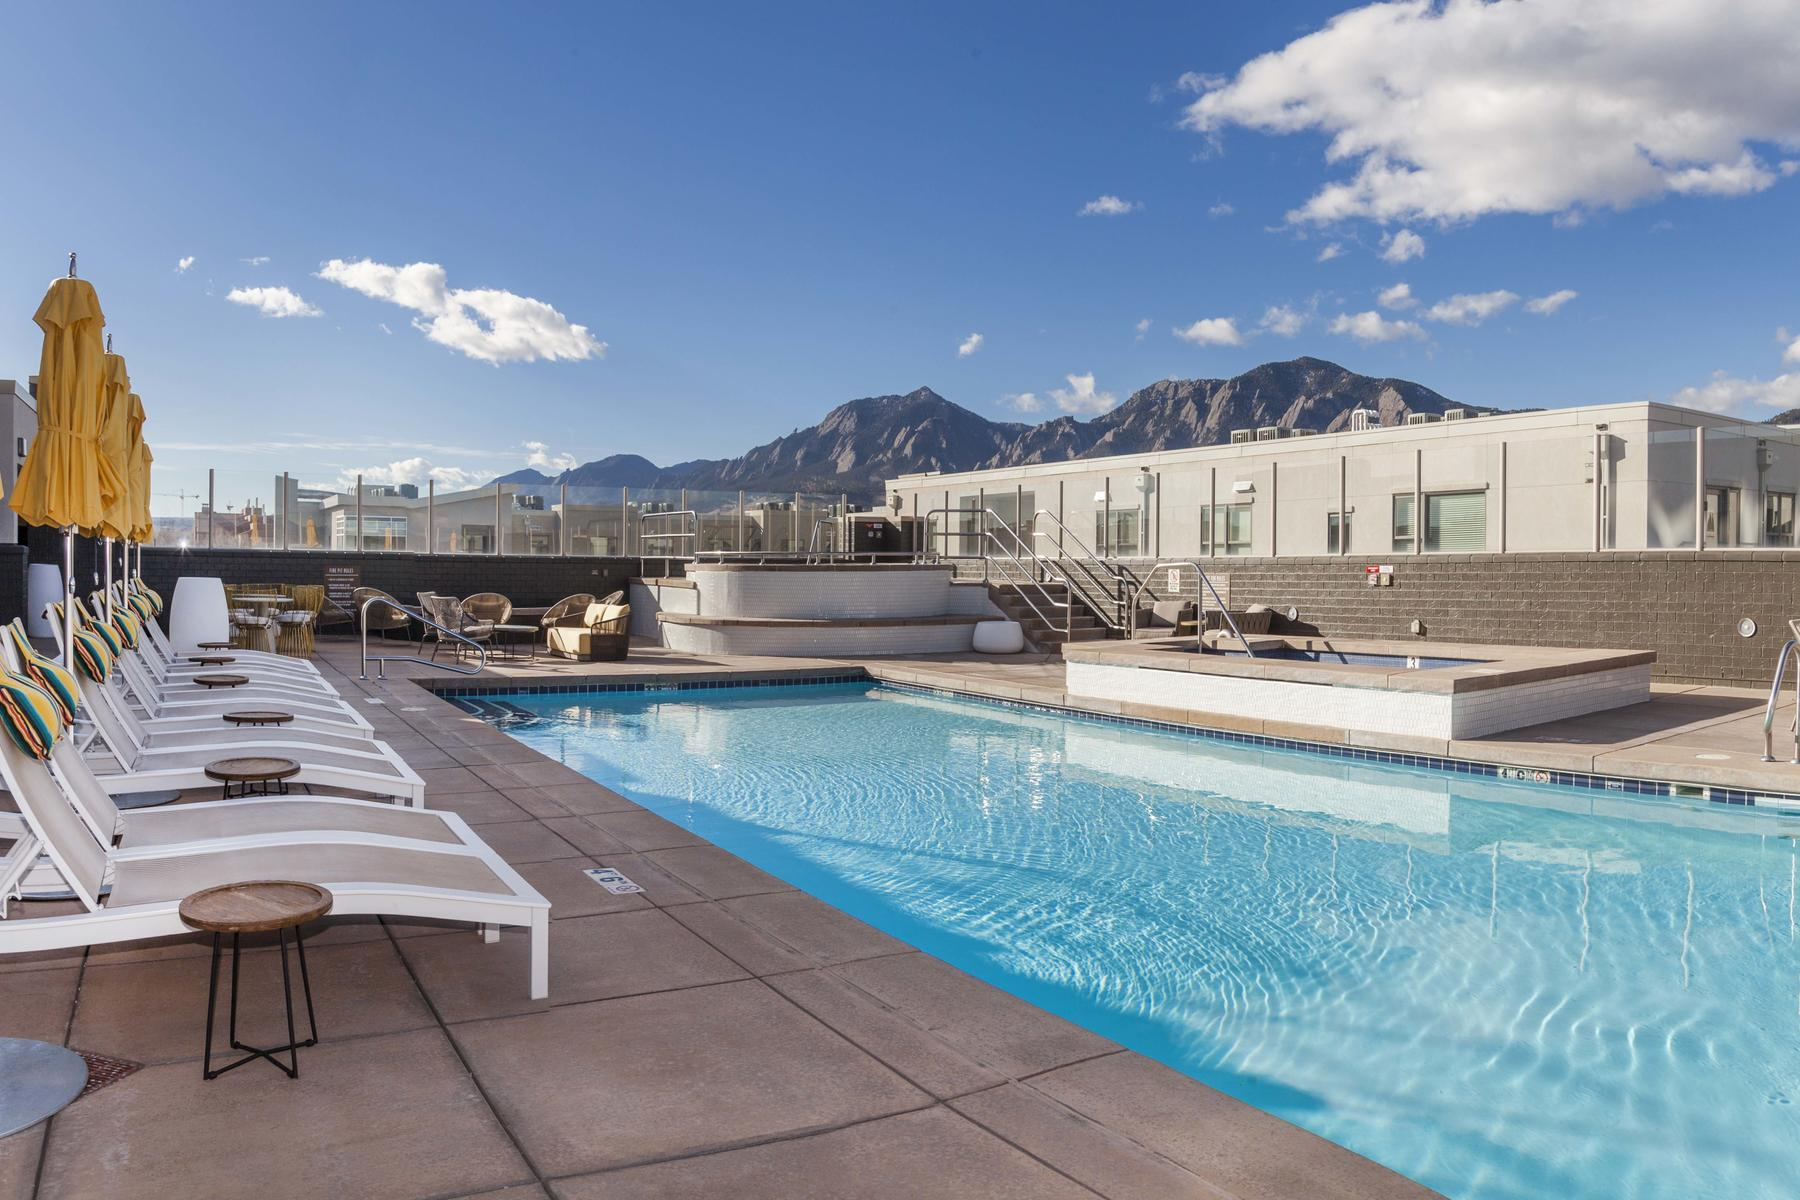 Additional photo for property listing at Contemporary Top Floor Unit in Desirable Condominium 3701 Arapahoe Avenue 413 Boulder, Colorado 80303 United States